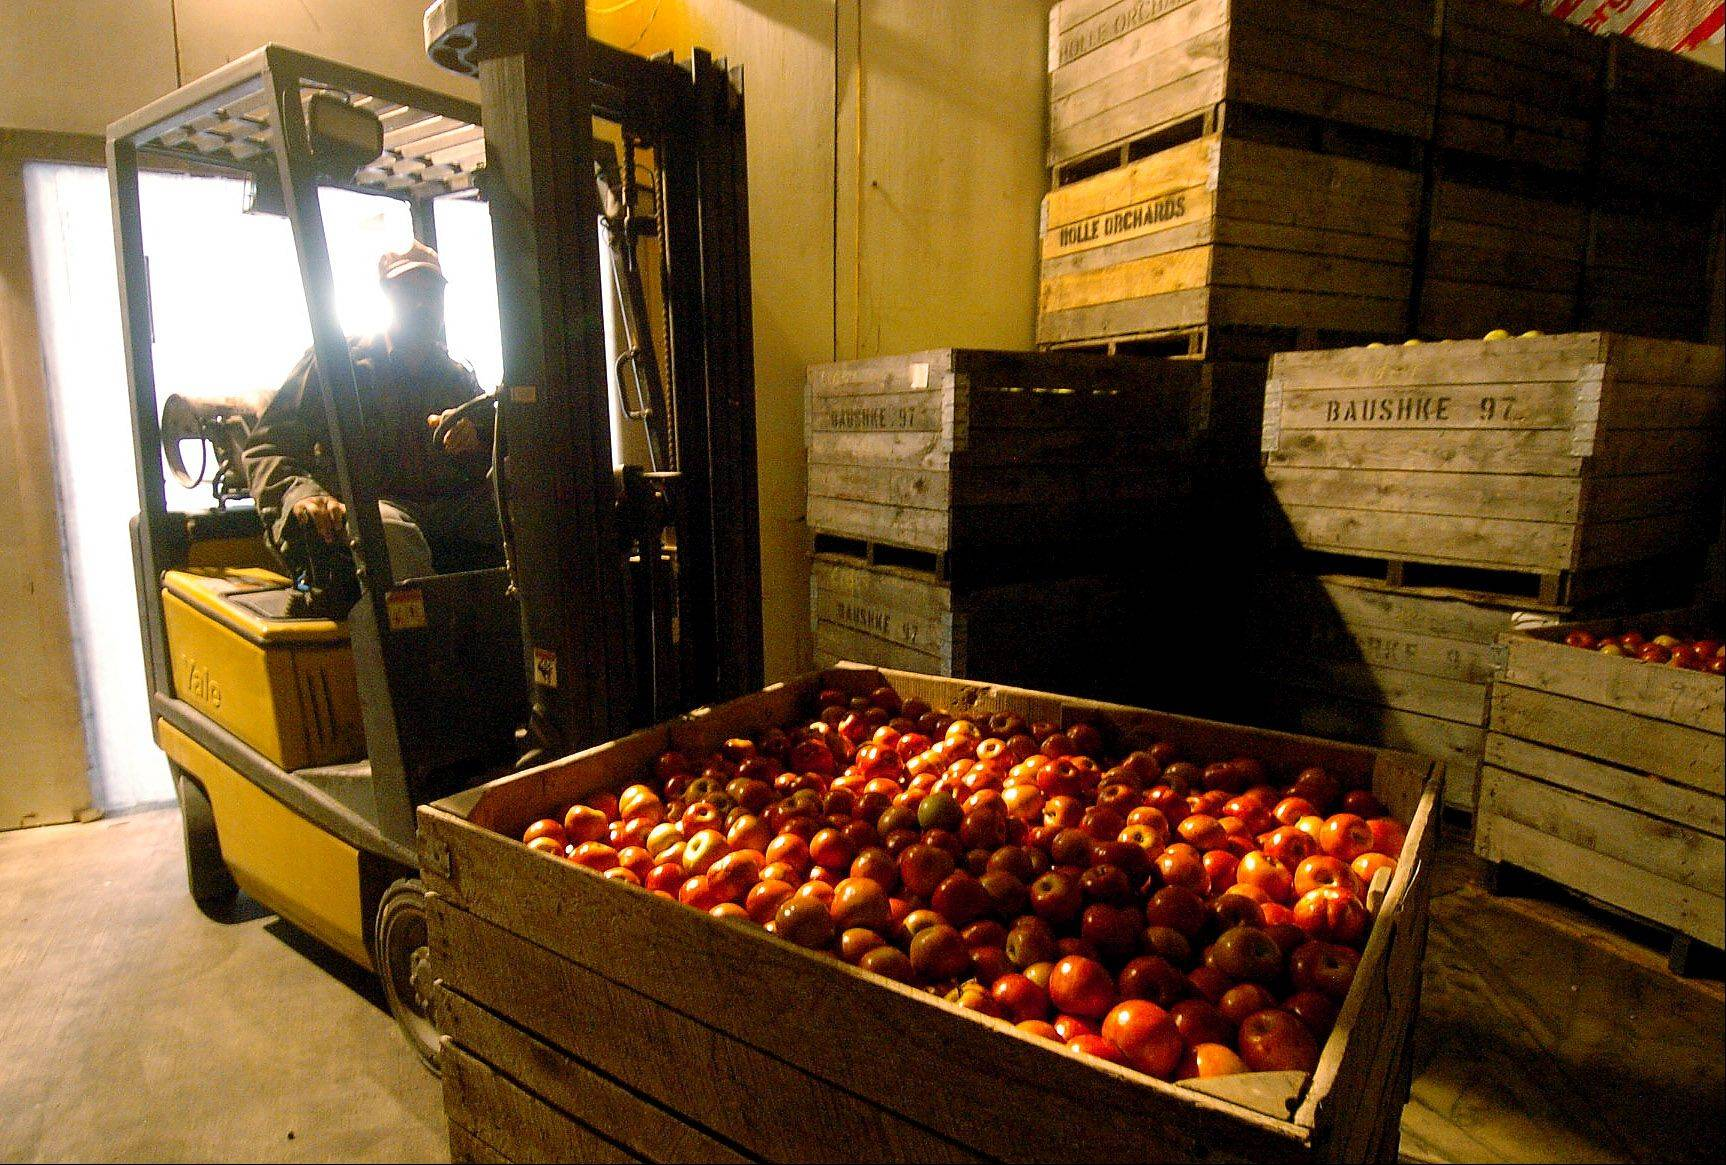 Manuel Rivera brings in a bin of apples into the cooler to be processed later into apple cider.